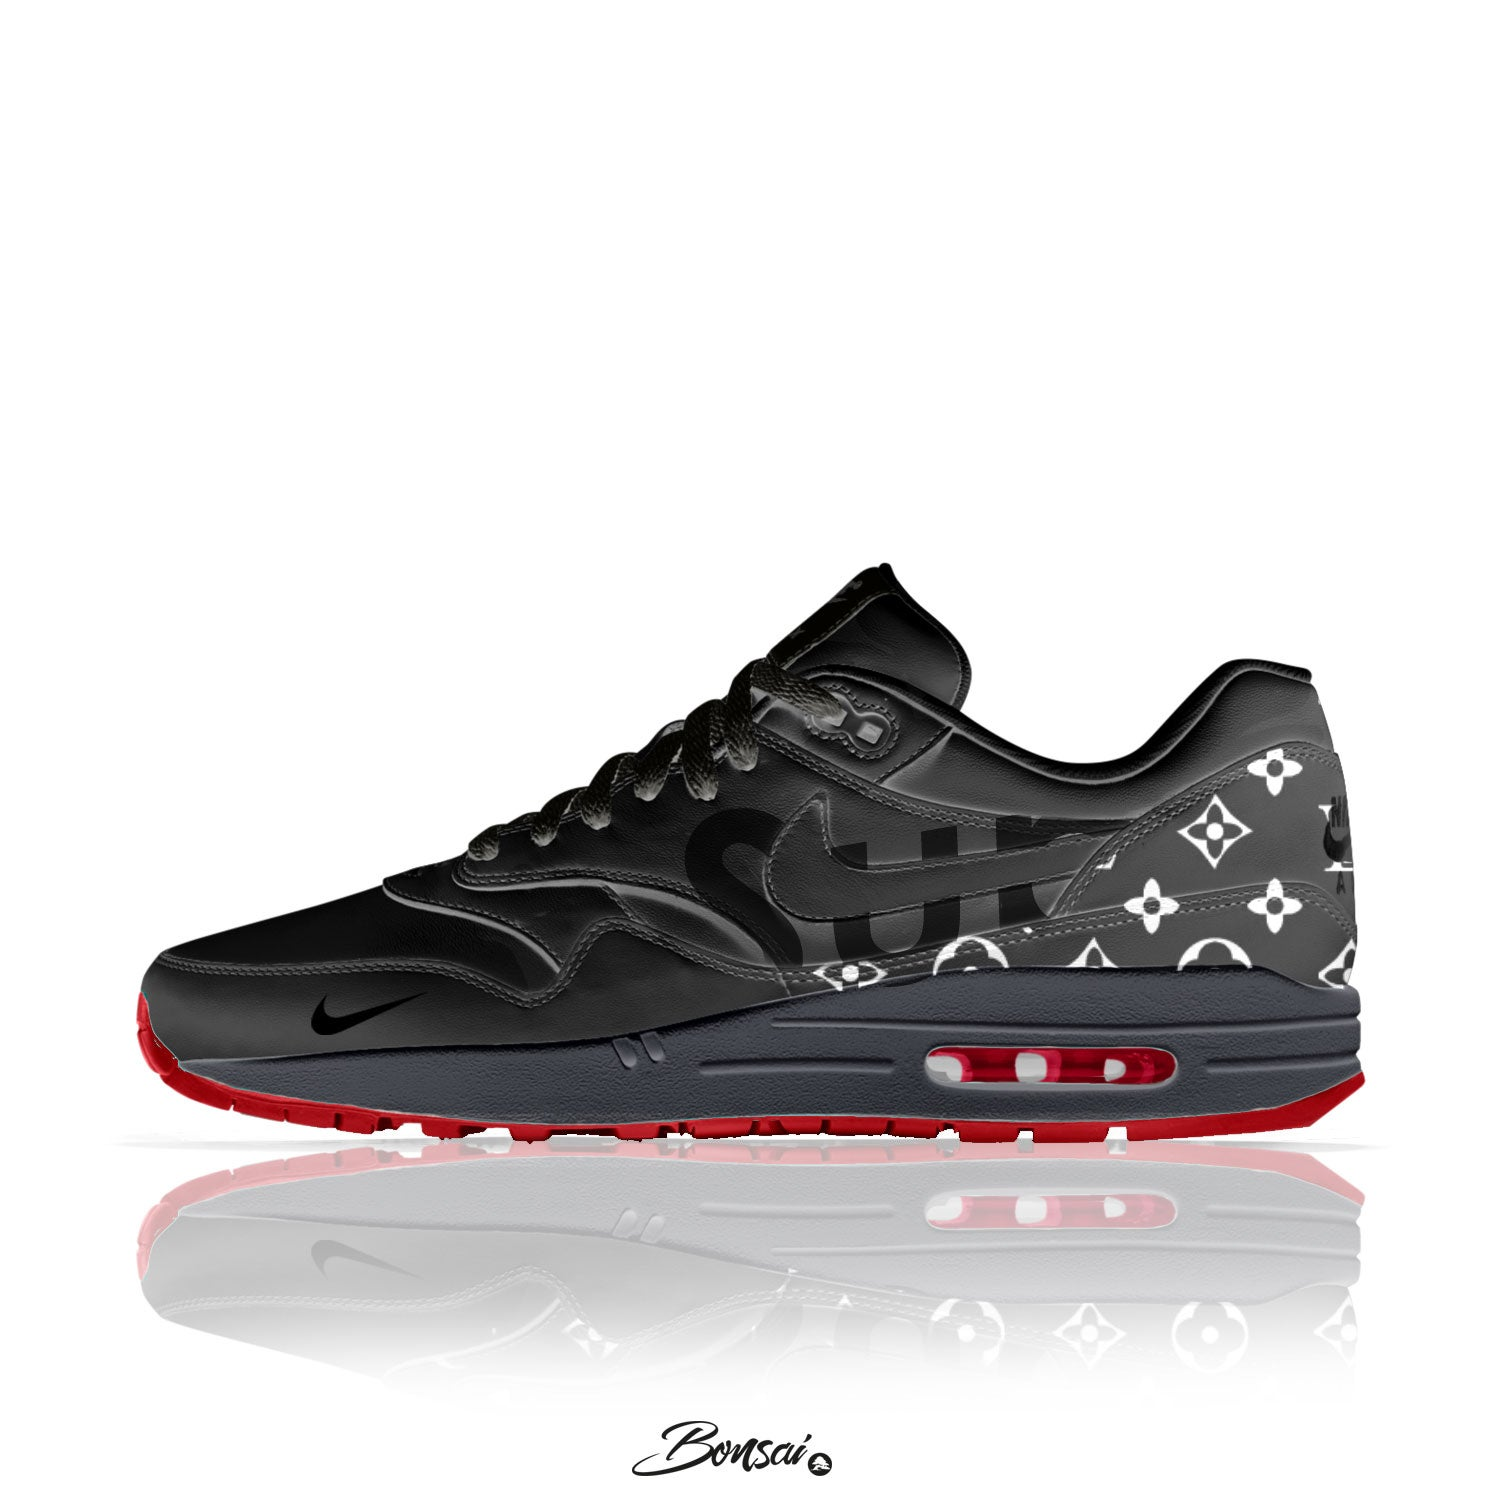 Image of Black above Red - Air Max 1